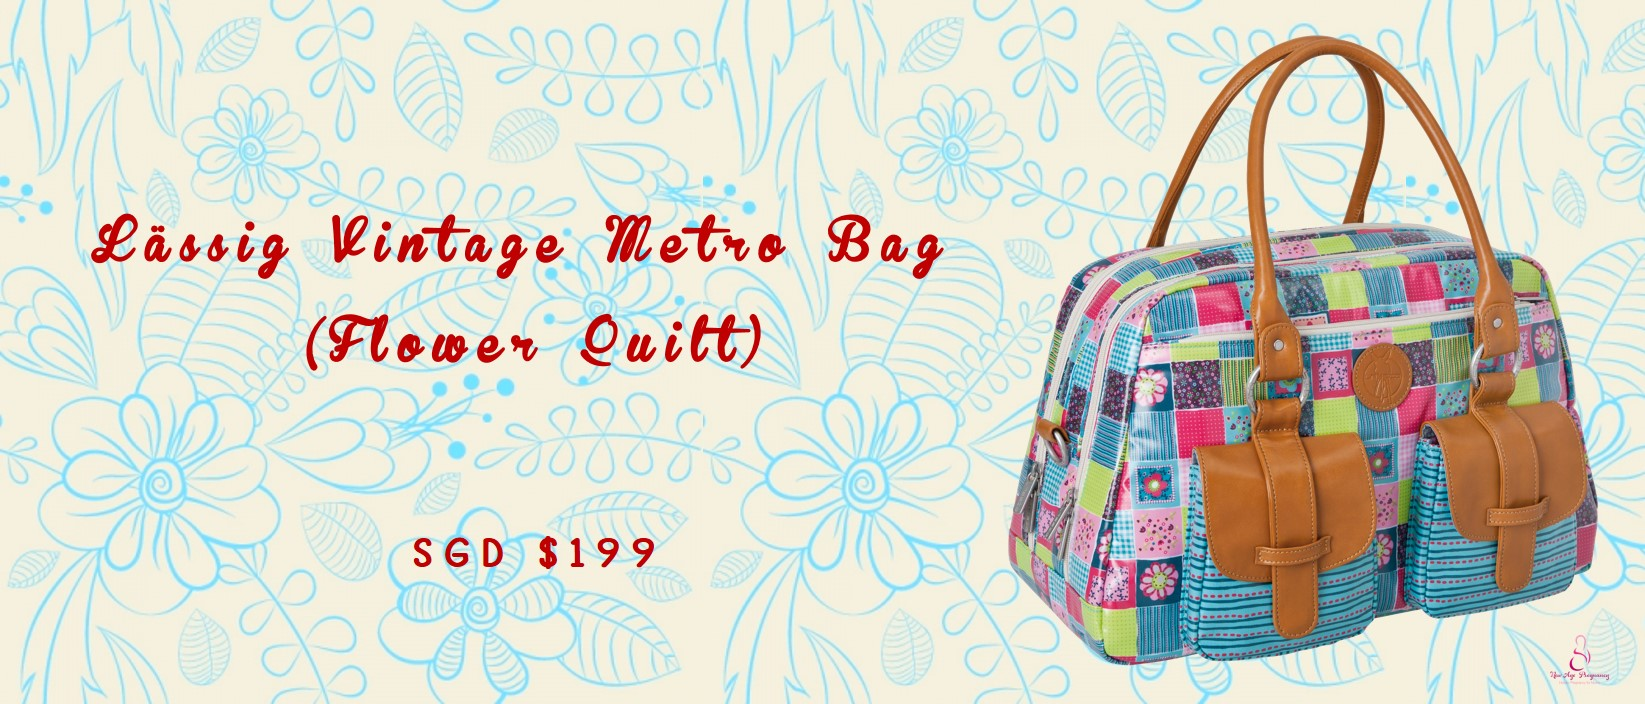 where to get diaper bag in Singapore